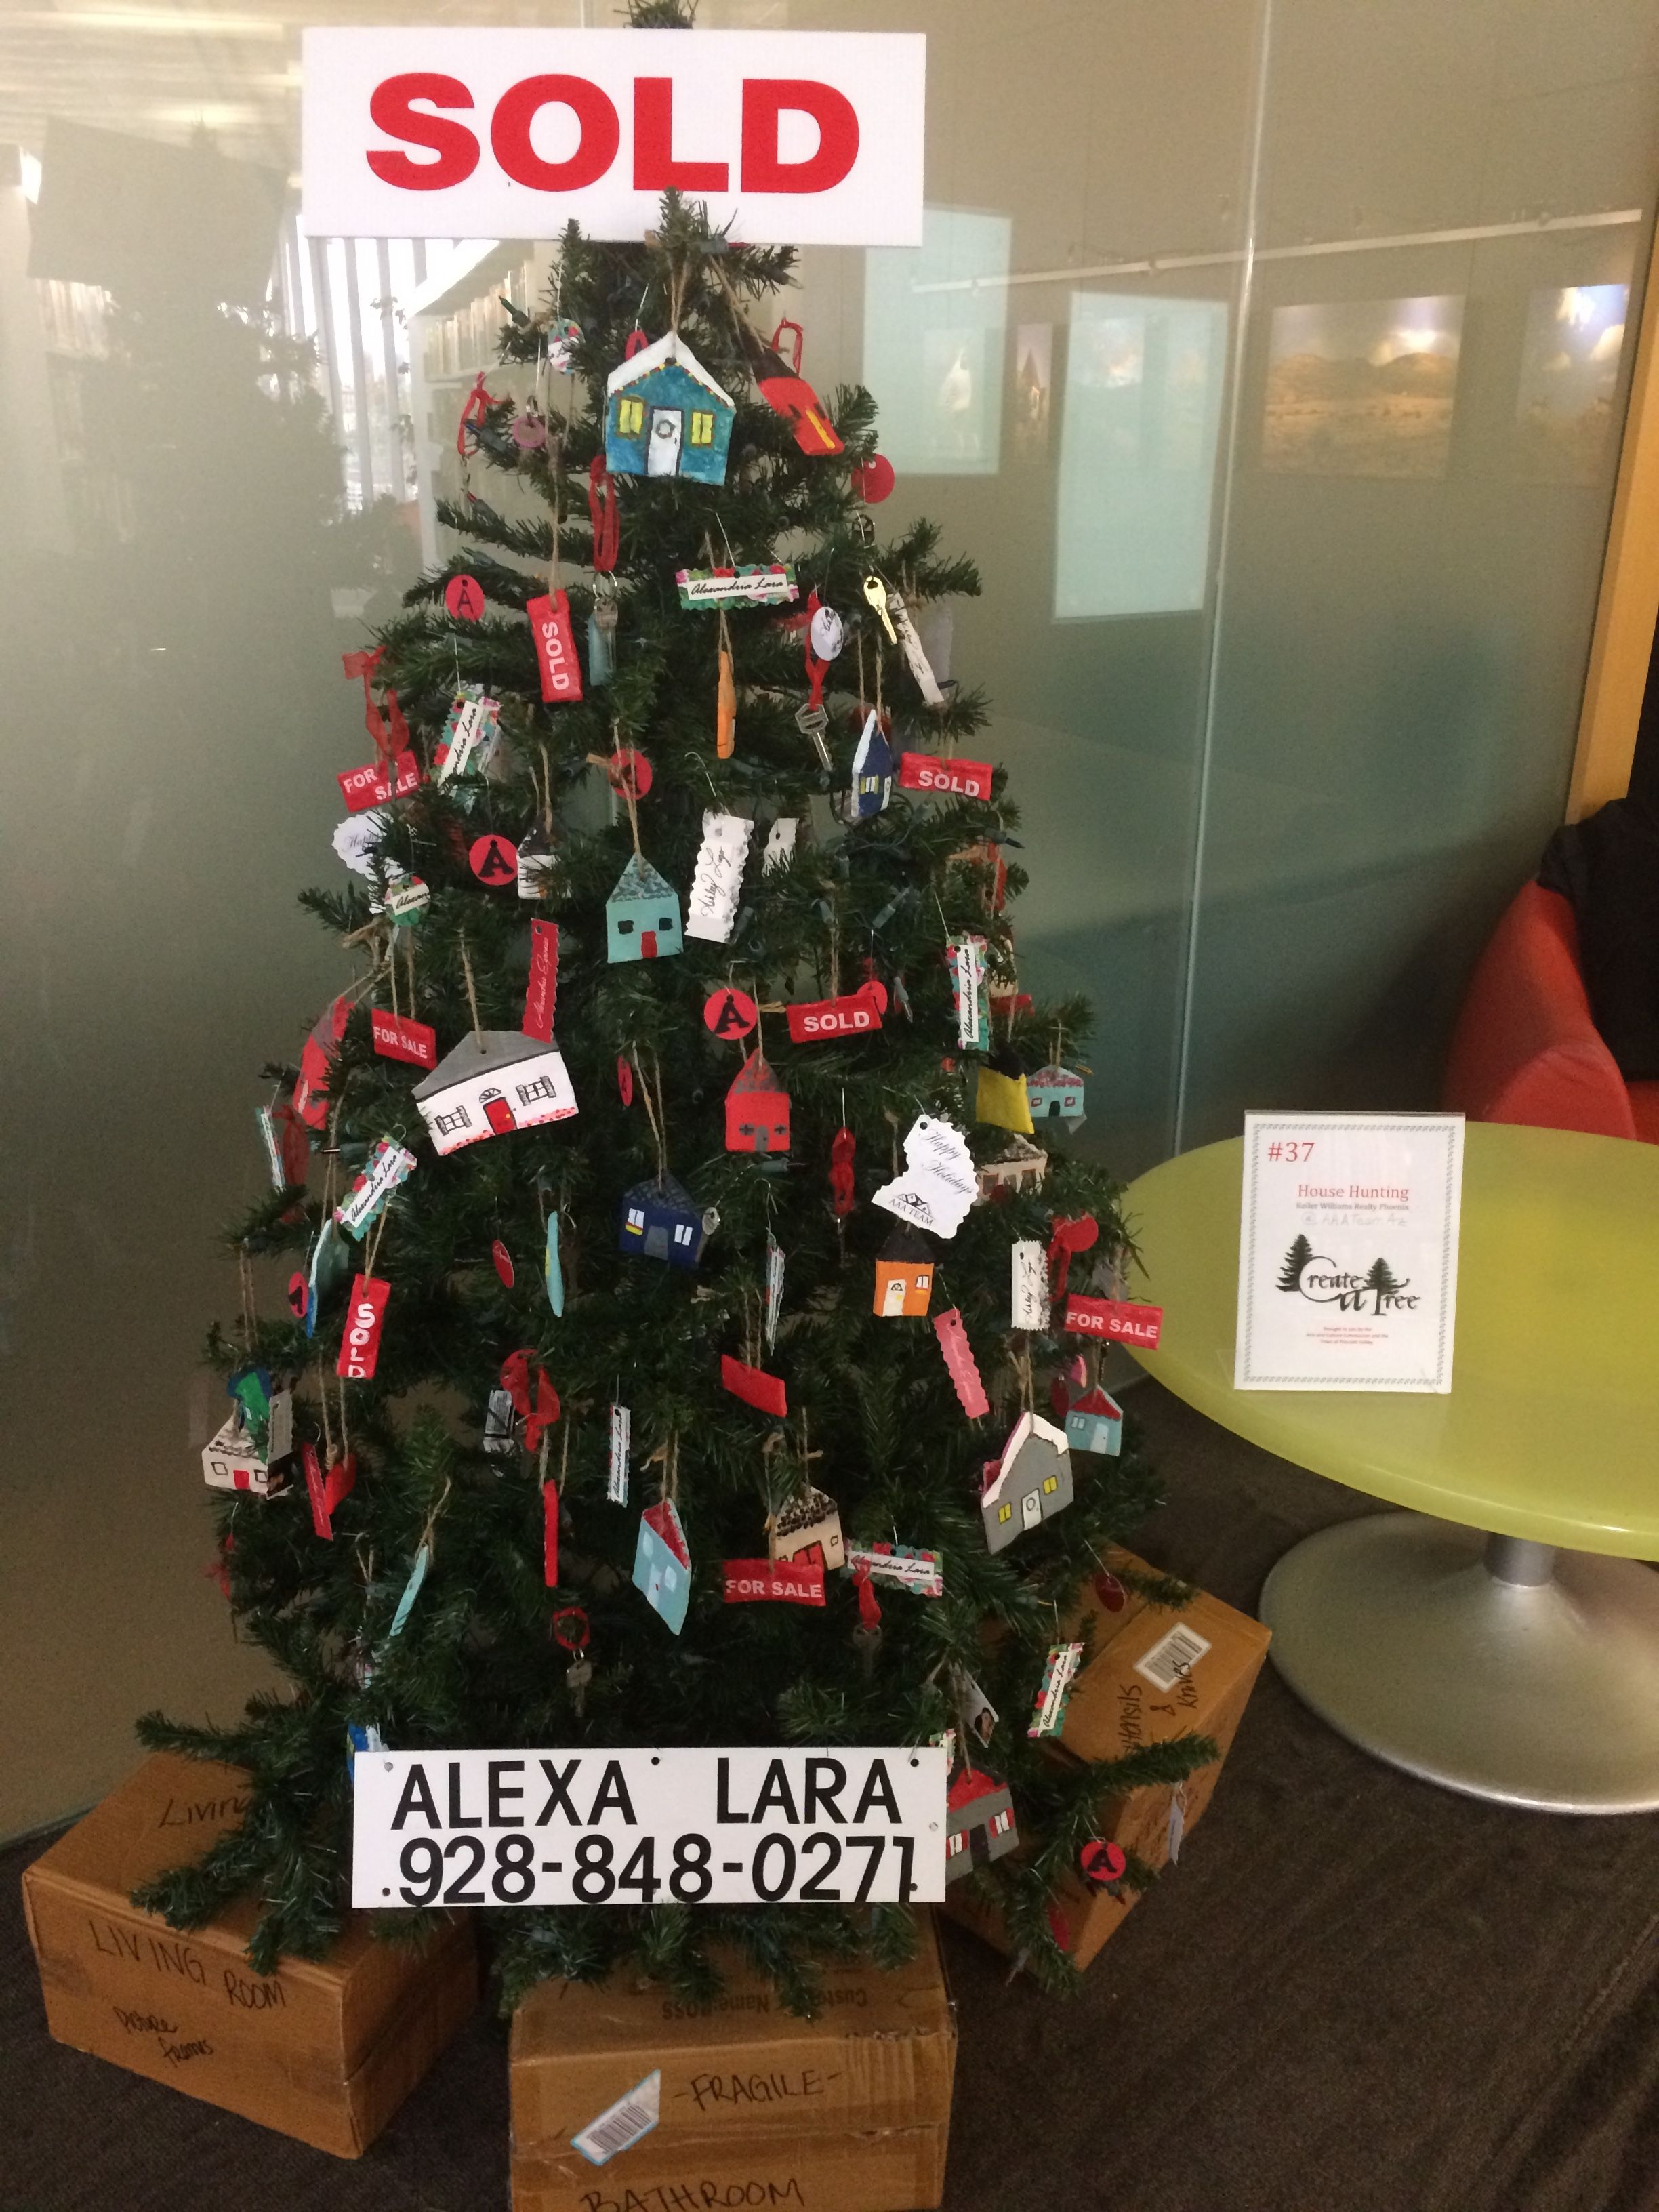 Diy real estate Christmas tree made by AAA Team Az for Create A Tree at the Prescott Valley Event Center. Ornaments made out of salt dough, leftover business cards, miniature houses, house keys, sign riders and moving boxes along the tree base